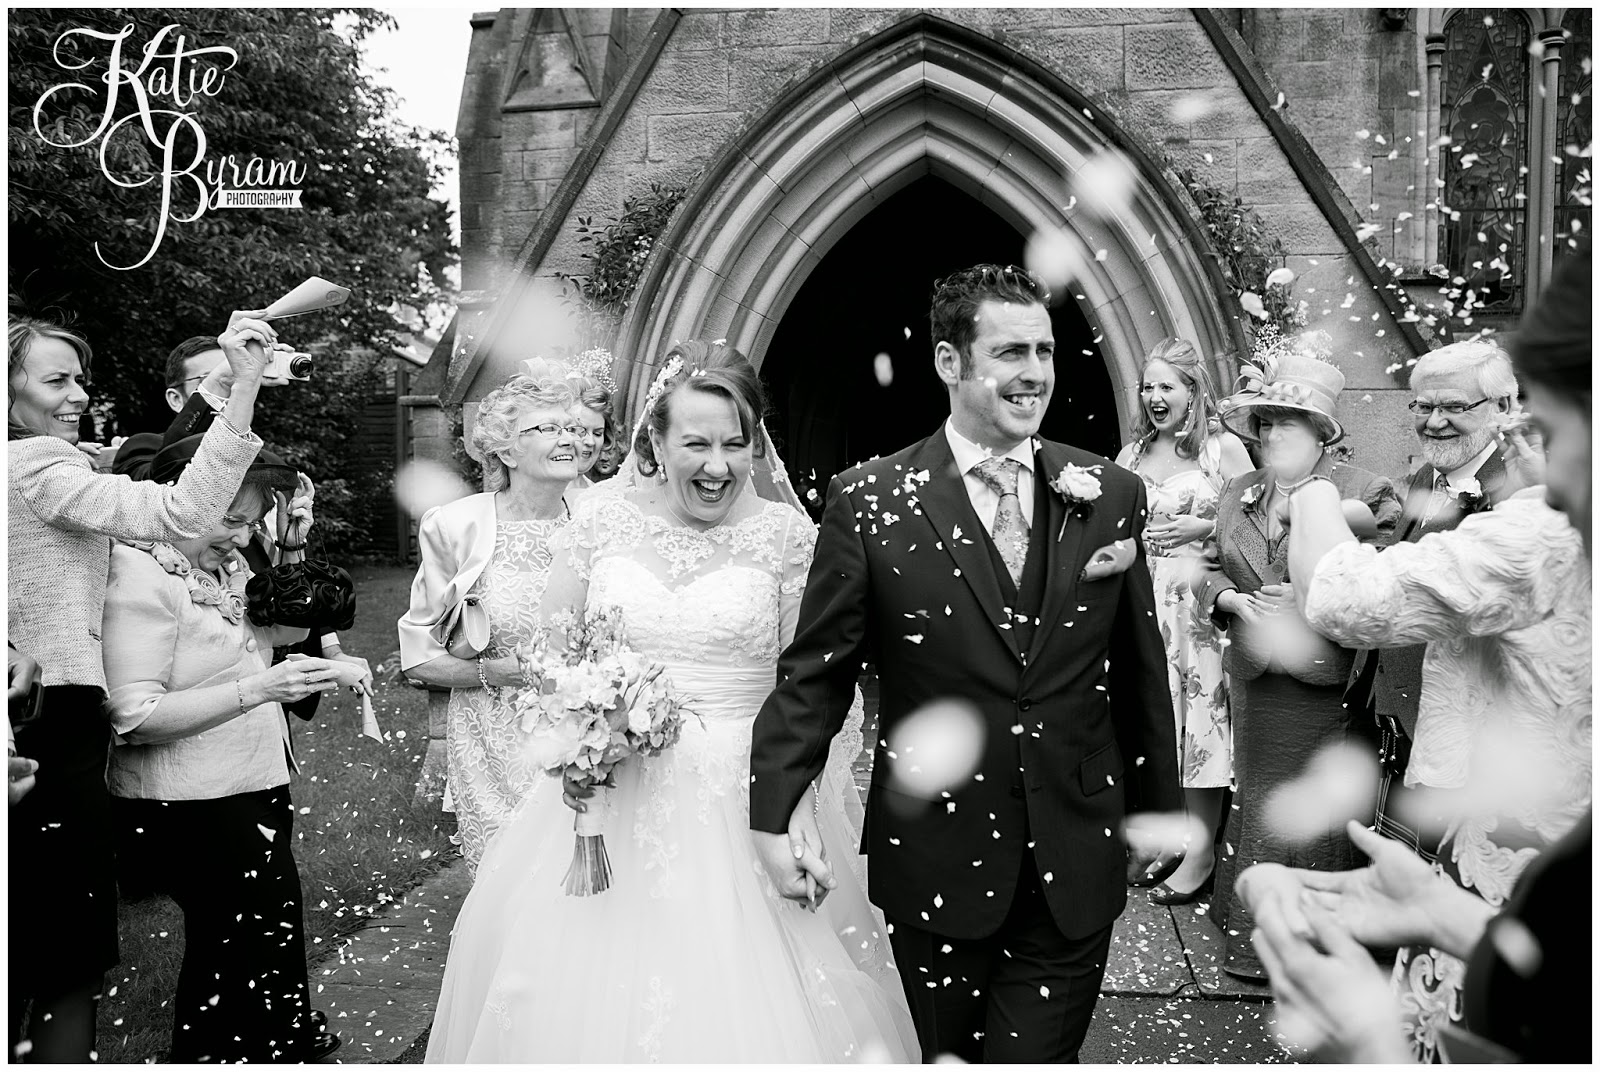 black and white wedding photograph, confetti shot, minsteracres wedding, lord crewe arms wedding, dog at wedding, scoops and smiles, katie byram photography, ice cream van hire newcastle, newcastle wedding photography, relaxed wedding photography, quirky, 50's wedding, alternative wedding, irregular choice, wedding dress with sleeves